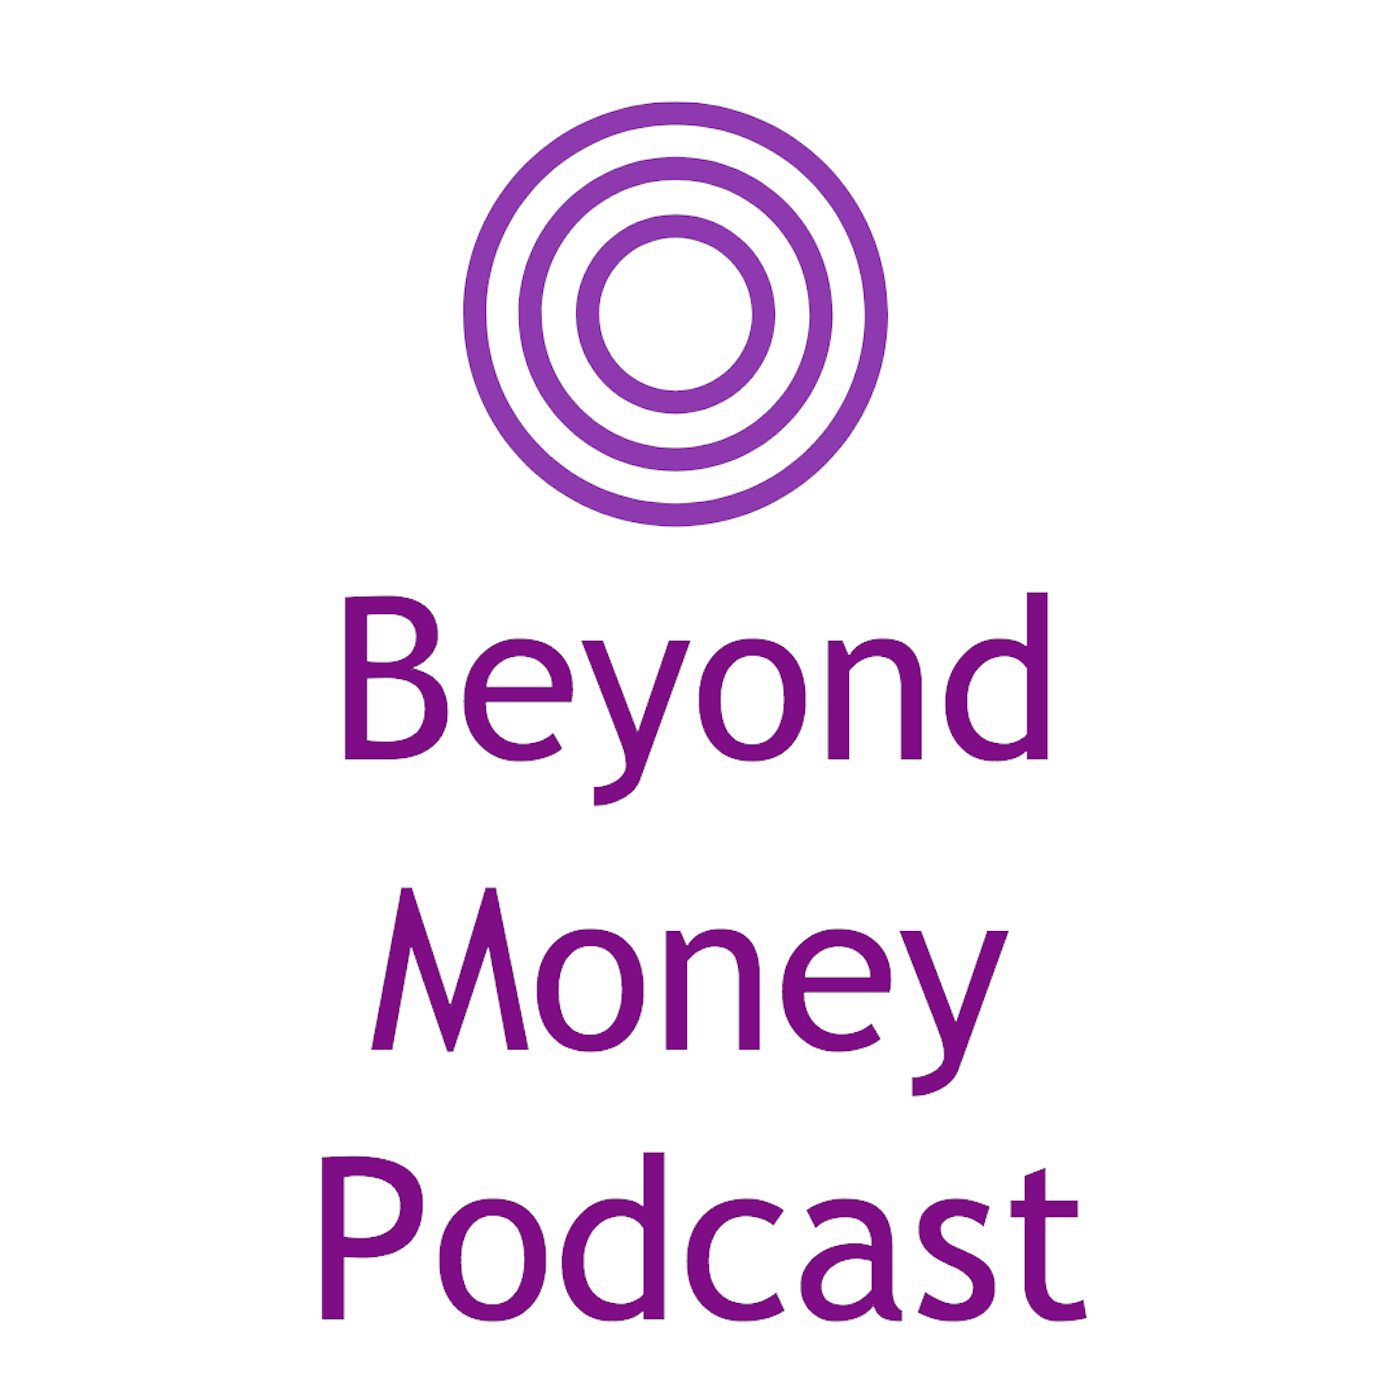 Beyond Money Podcast show art